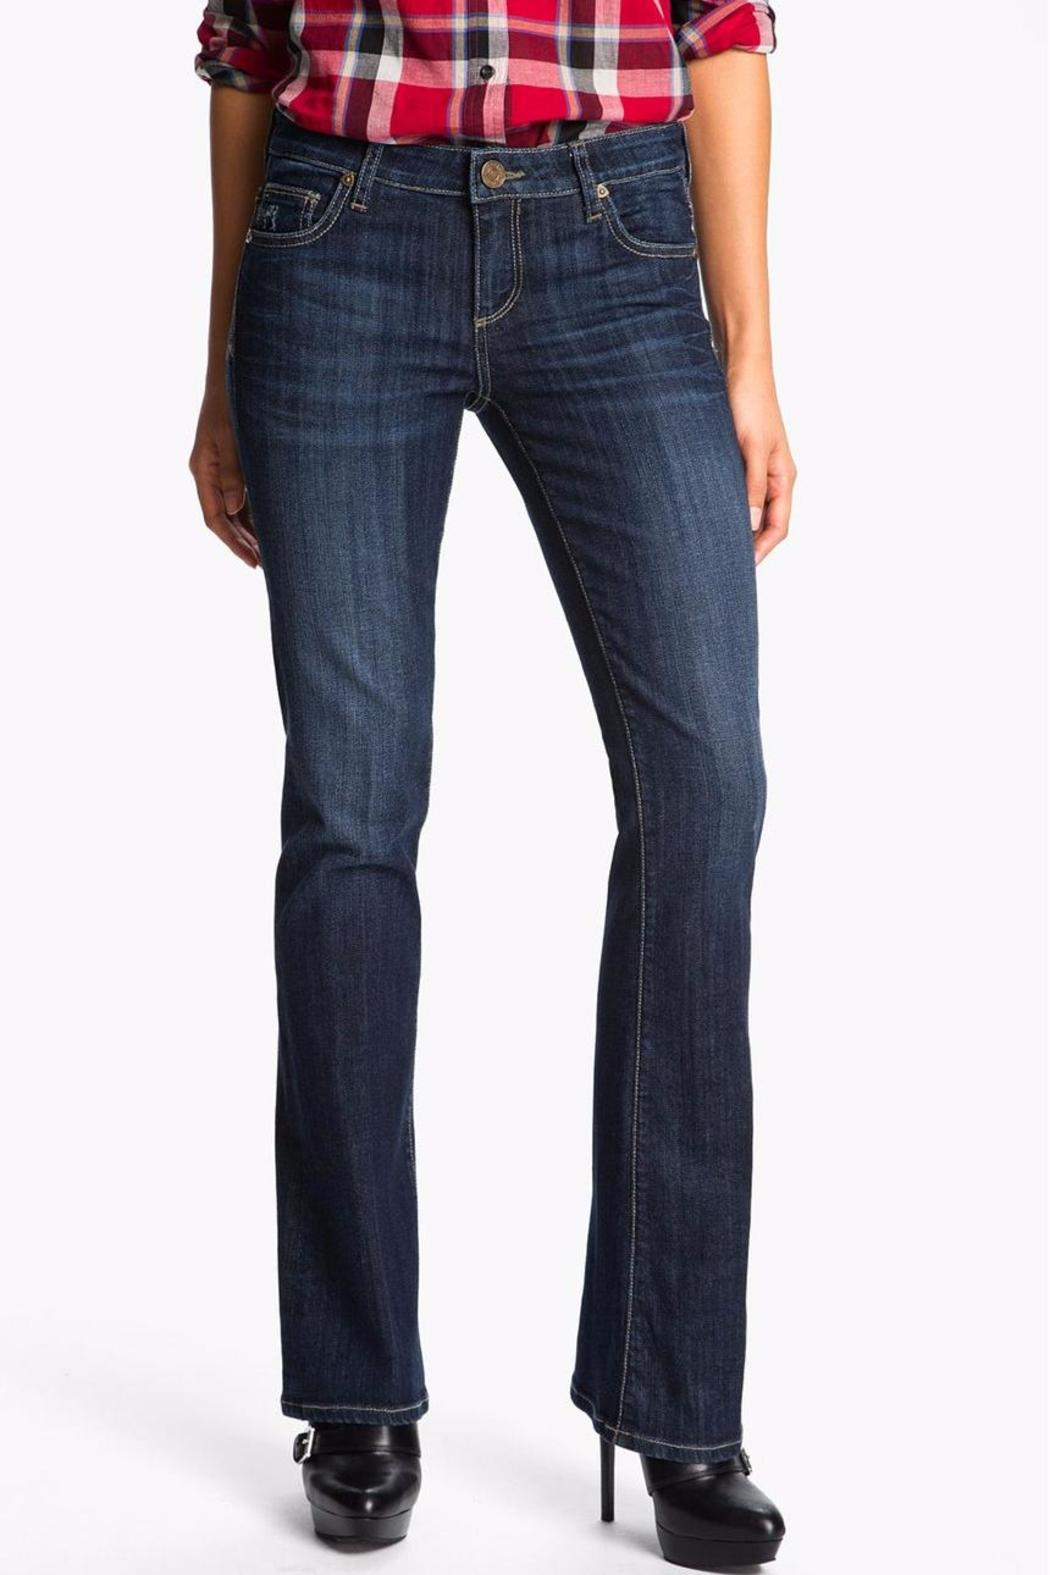 Kut from the Kloth Baby Bootcut Jeans - Main Image